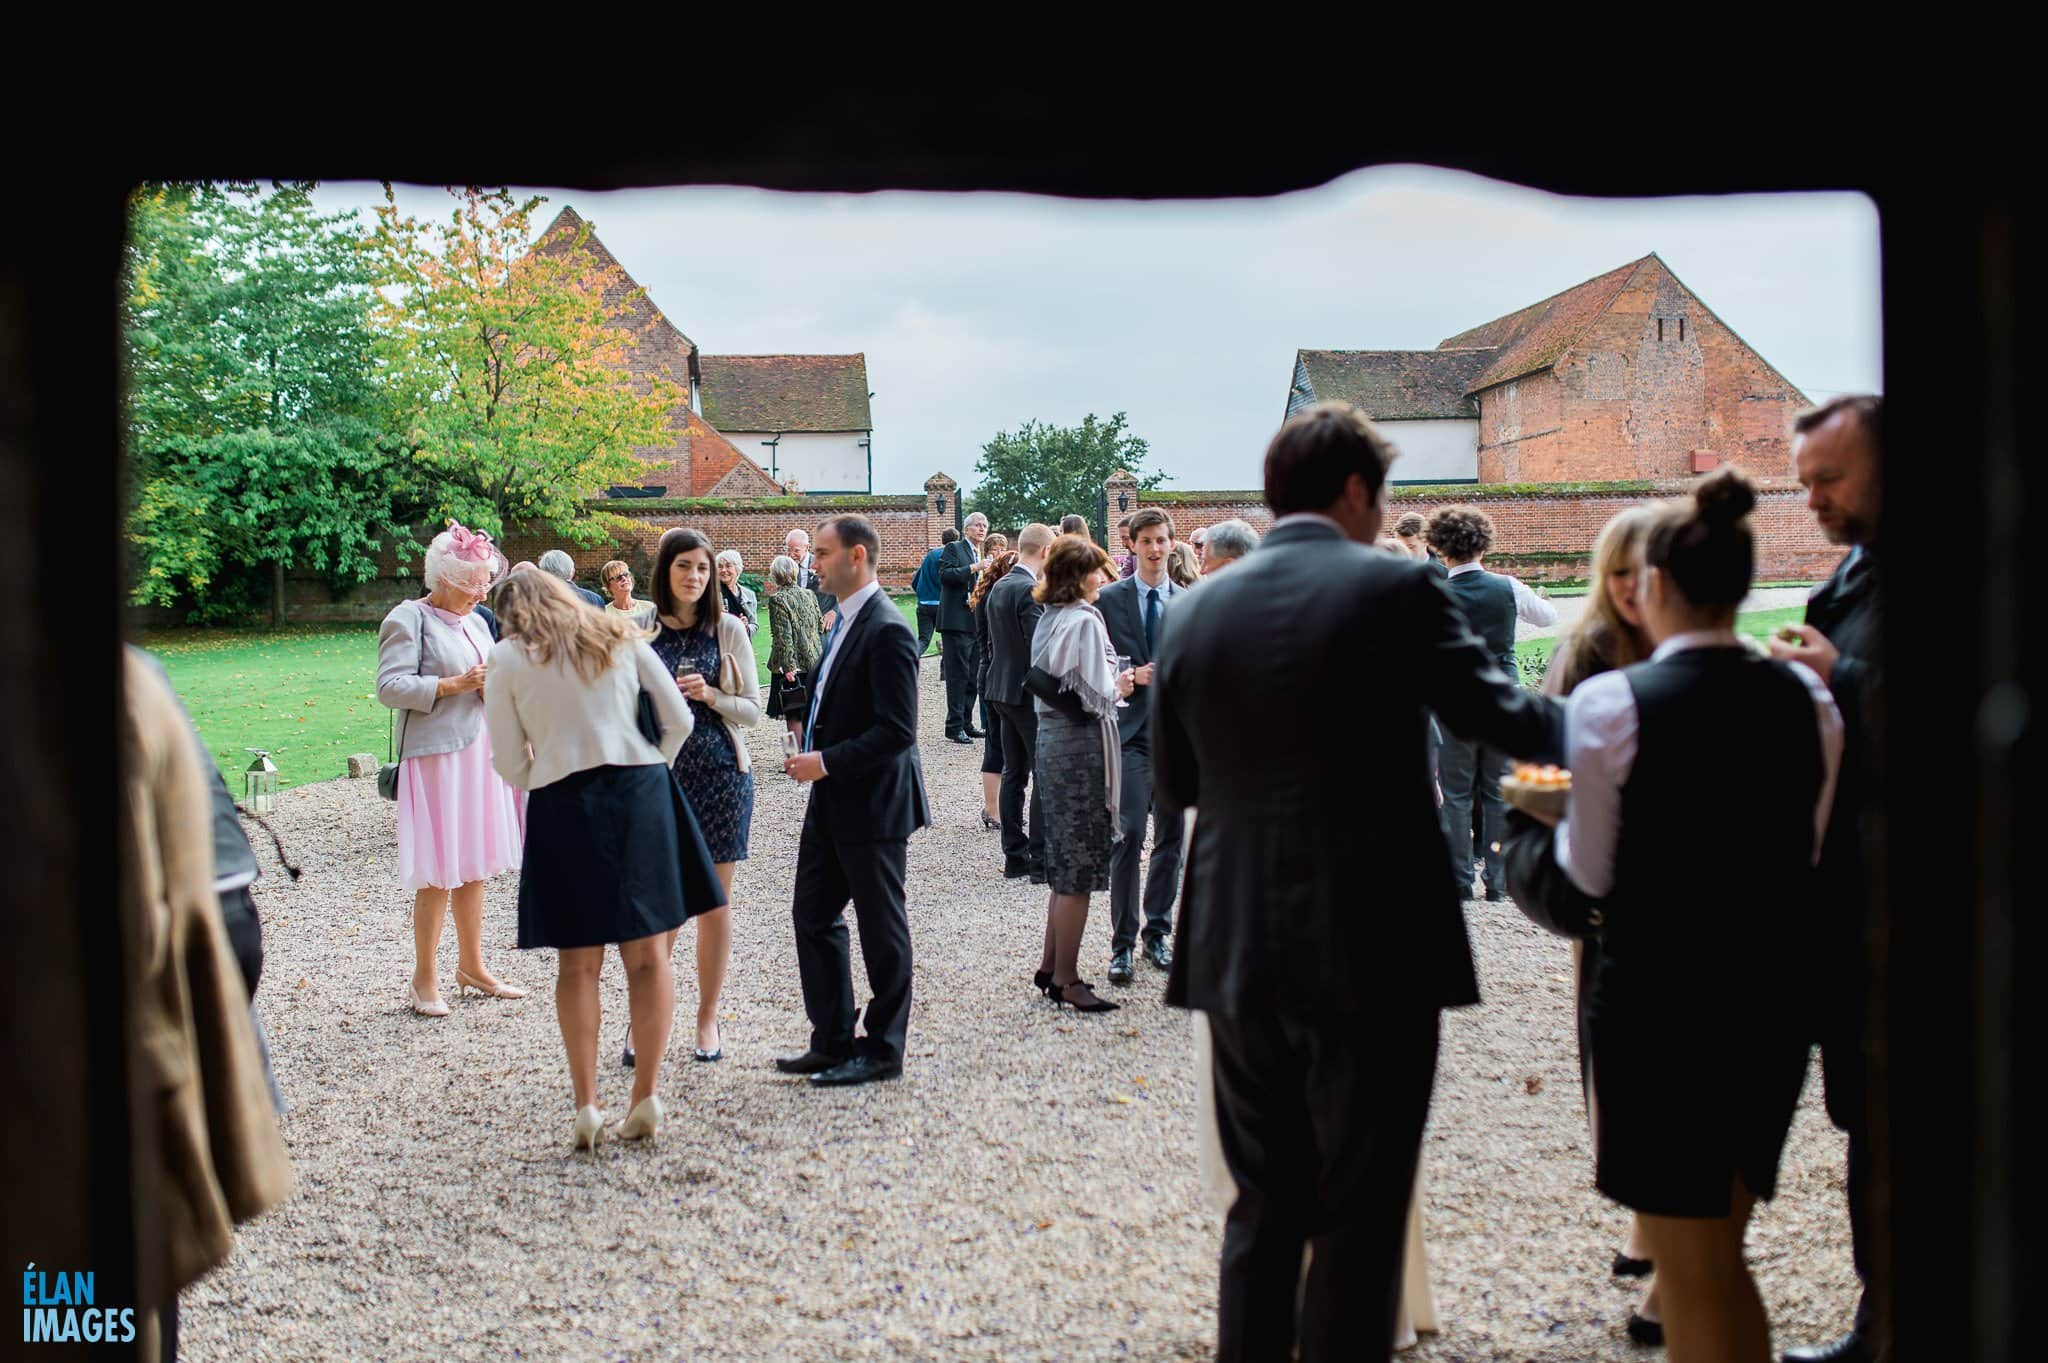 Wedding at Leez Priory, Essex 27